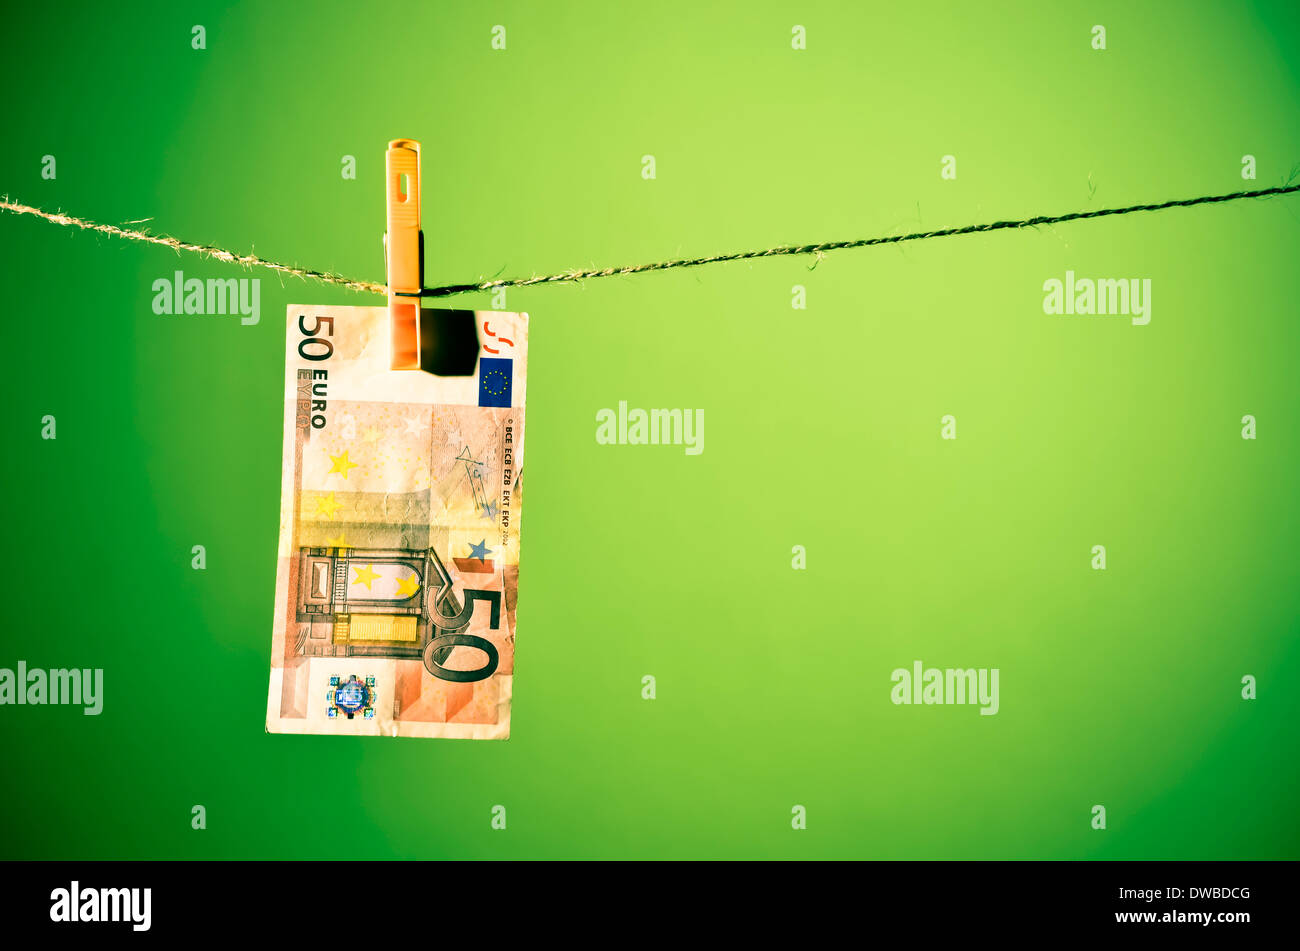 Fifty Euro banknote hanging on a clothesline, green background. - Stock Image